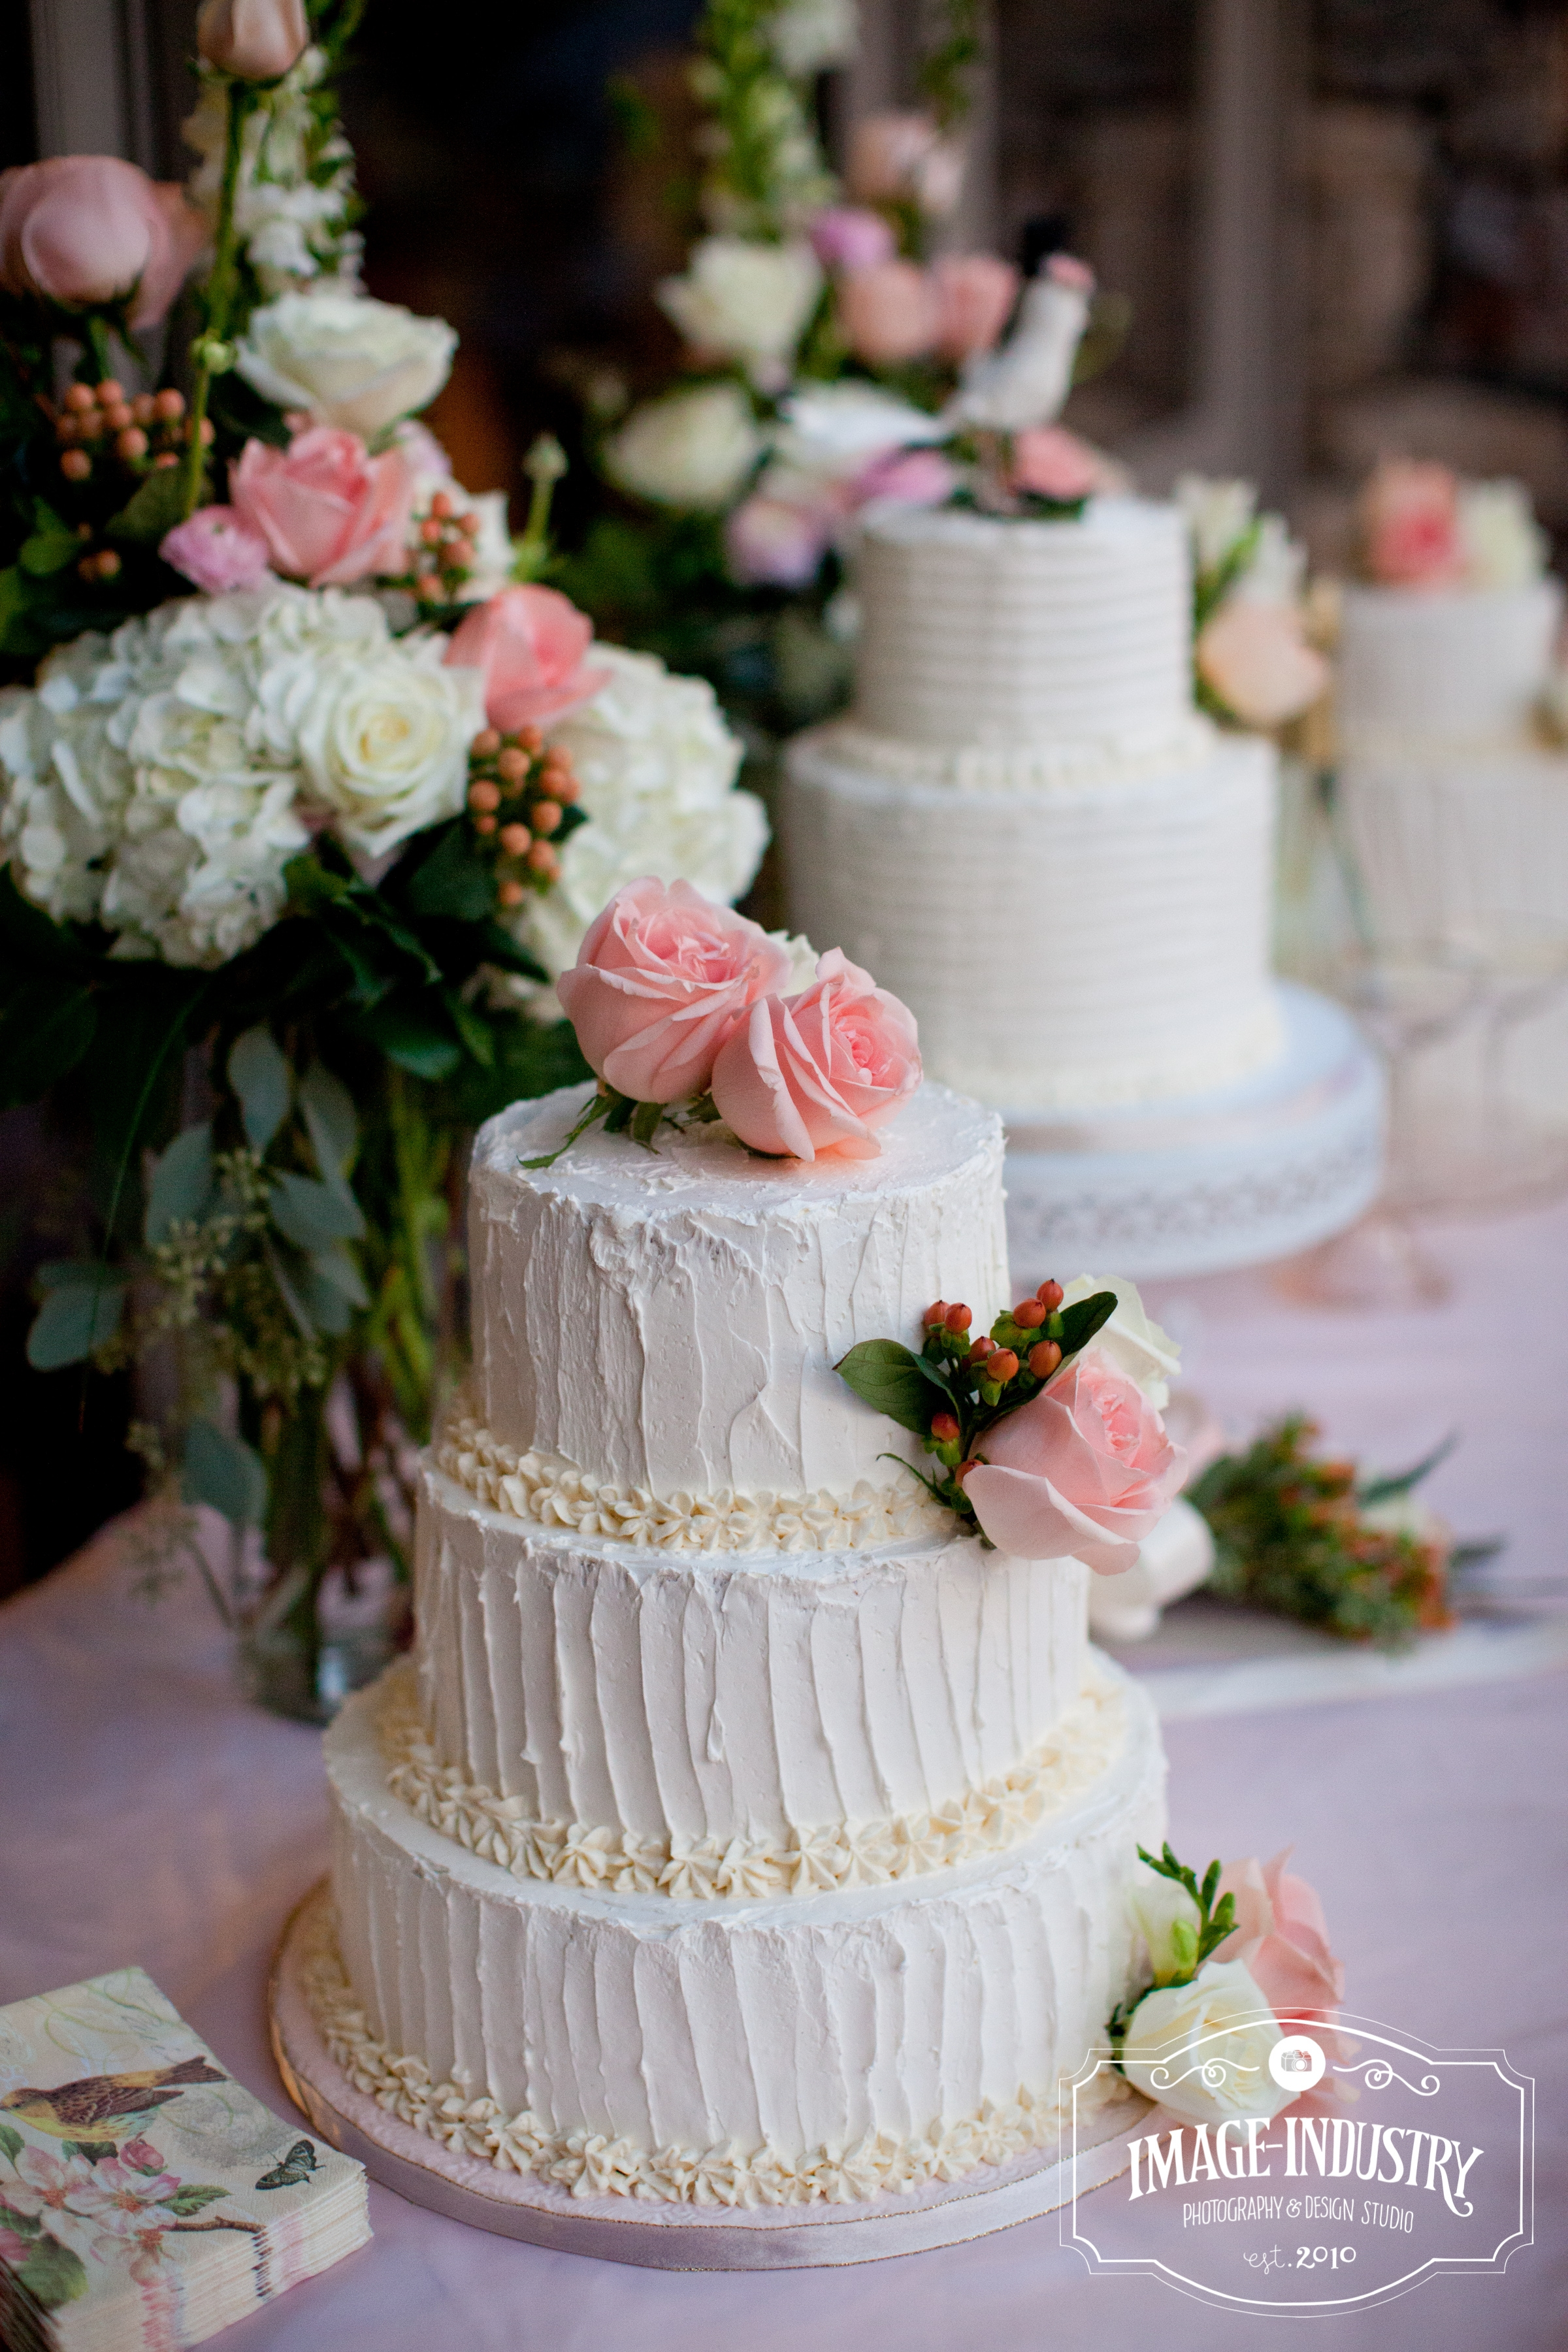 trio of butter cream wedding cakes all with a different texture and topped with fresh flowers. Black Bedroom Furniture Sets. Home Design Ideas